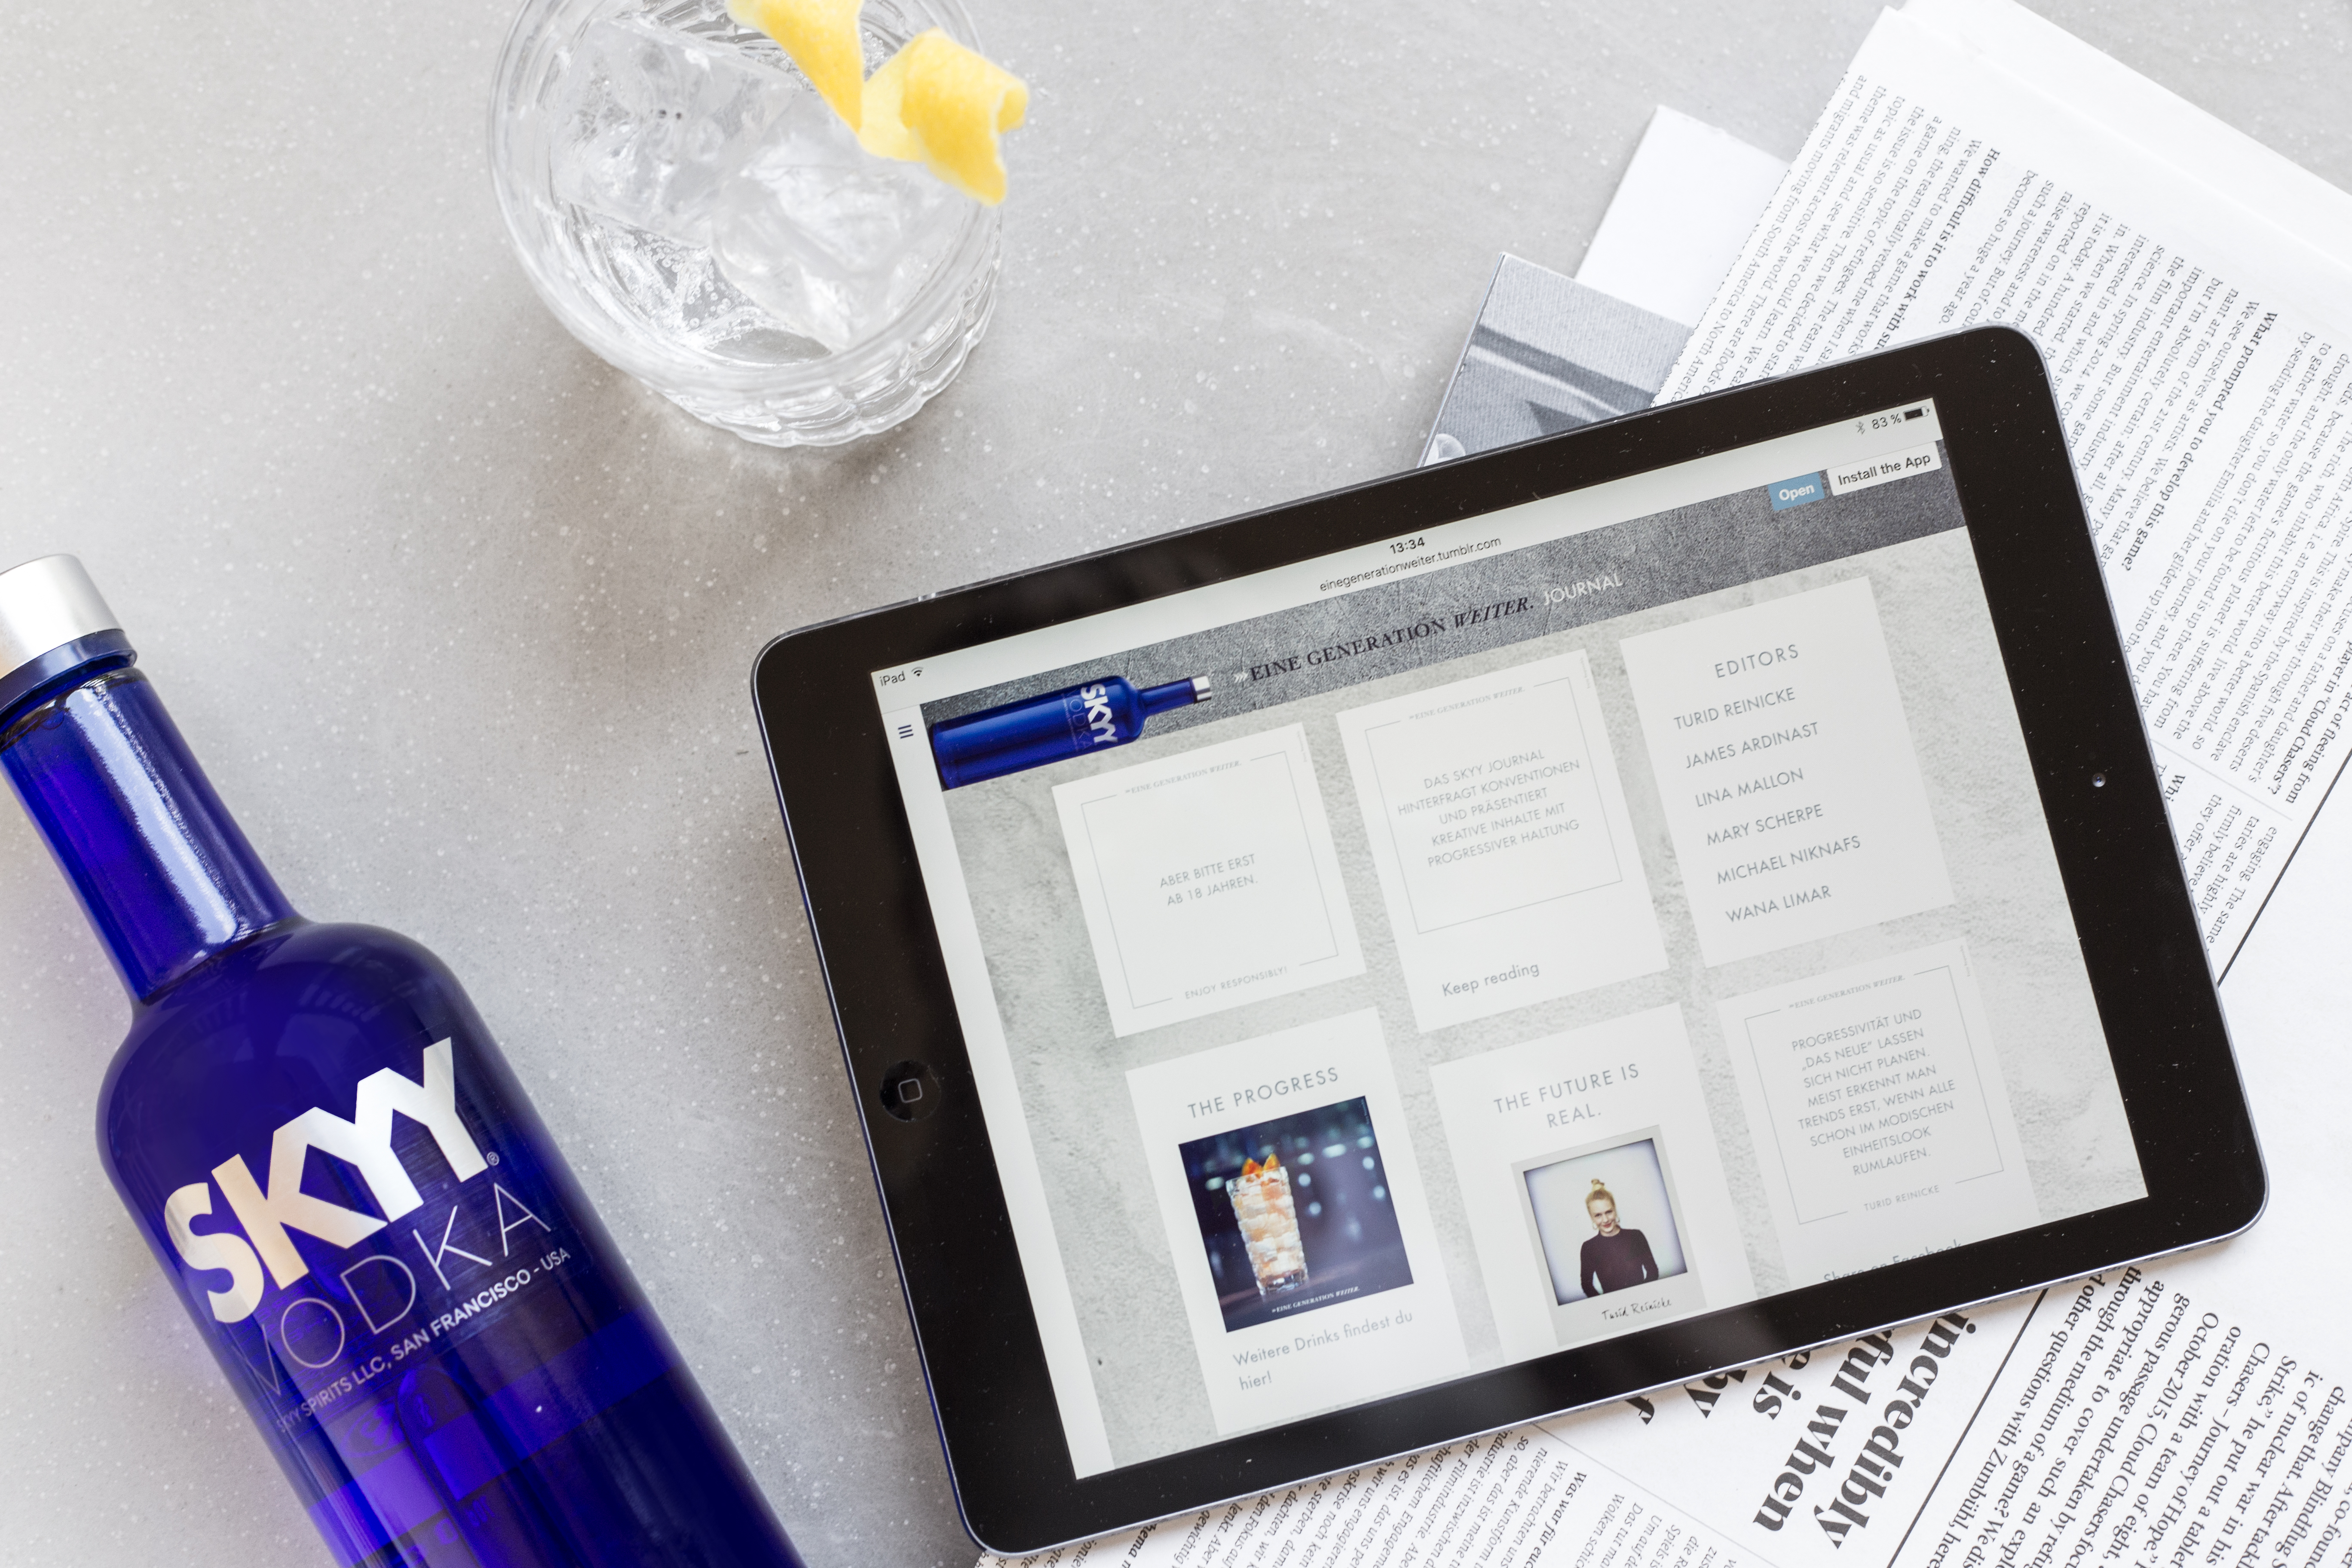 Der Premium-Vodka launcht eigenes Lifestyle-Journal